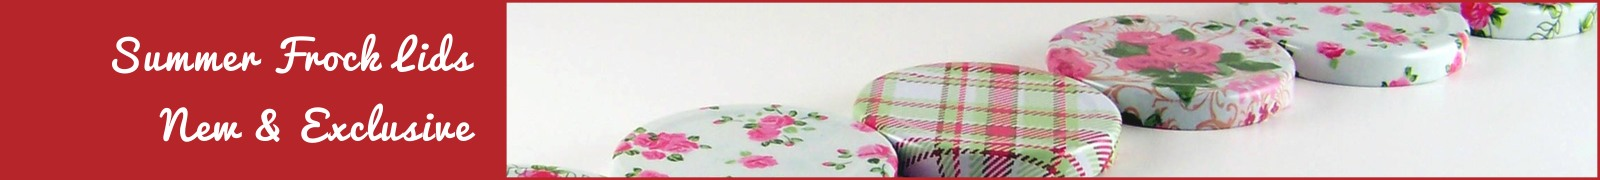 Summer Frock Rose Print Jam Jar Lid Designs